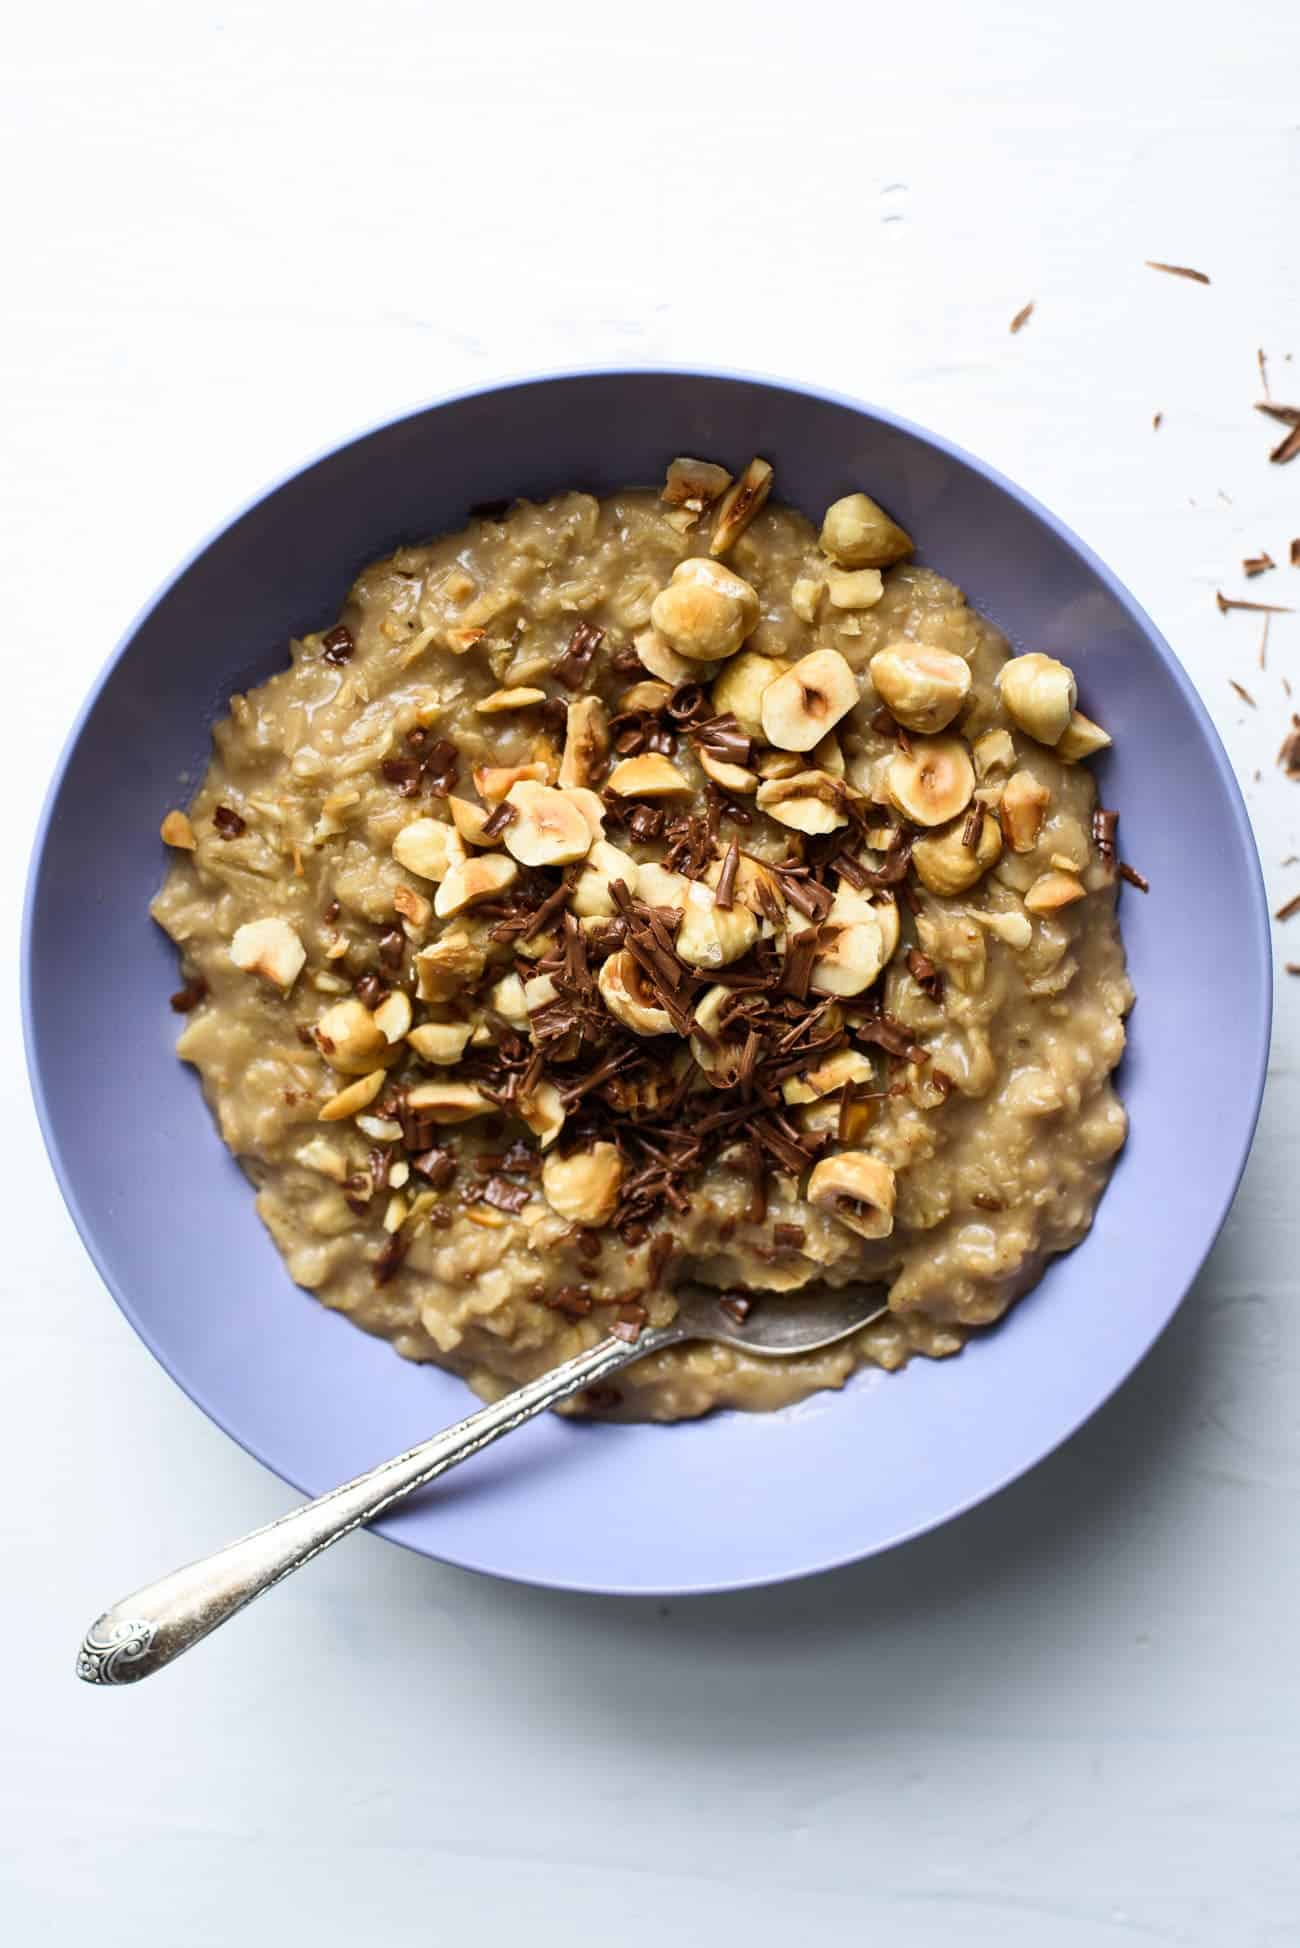 Coffee Oatmeal with Chocolate and Hazelnuts | The New Baguette #vegan #coffee #oatmeal #breakfastrecipes #healthybreakfast